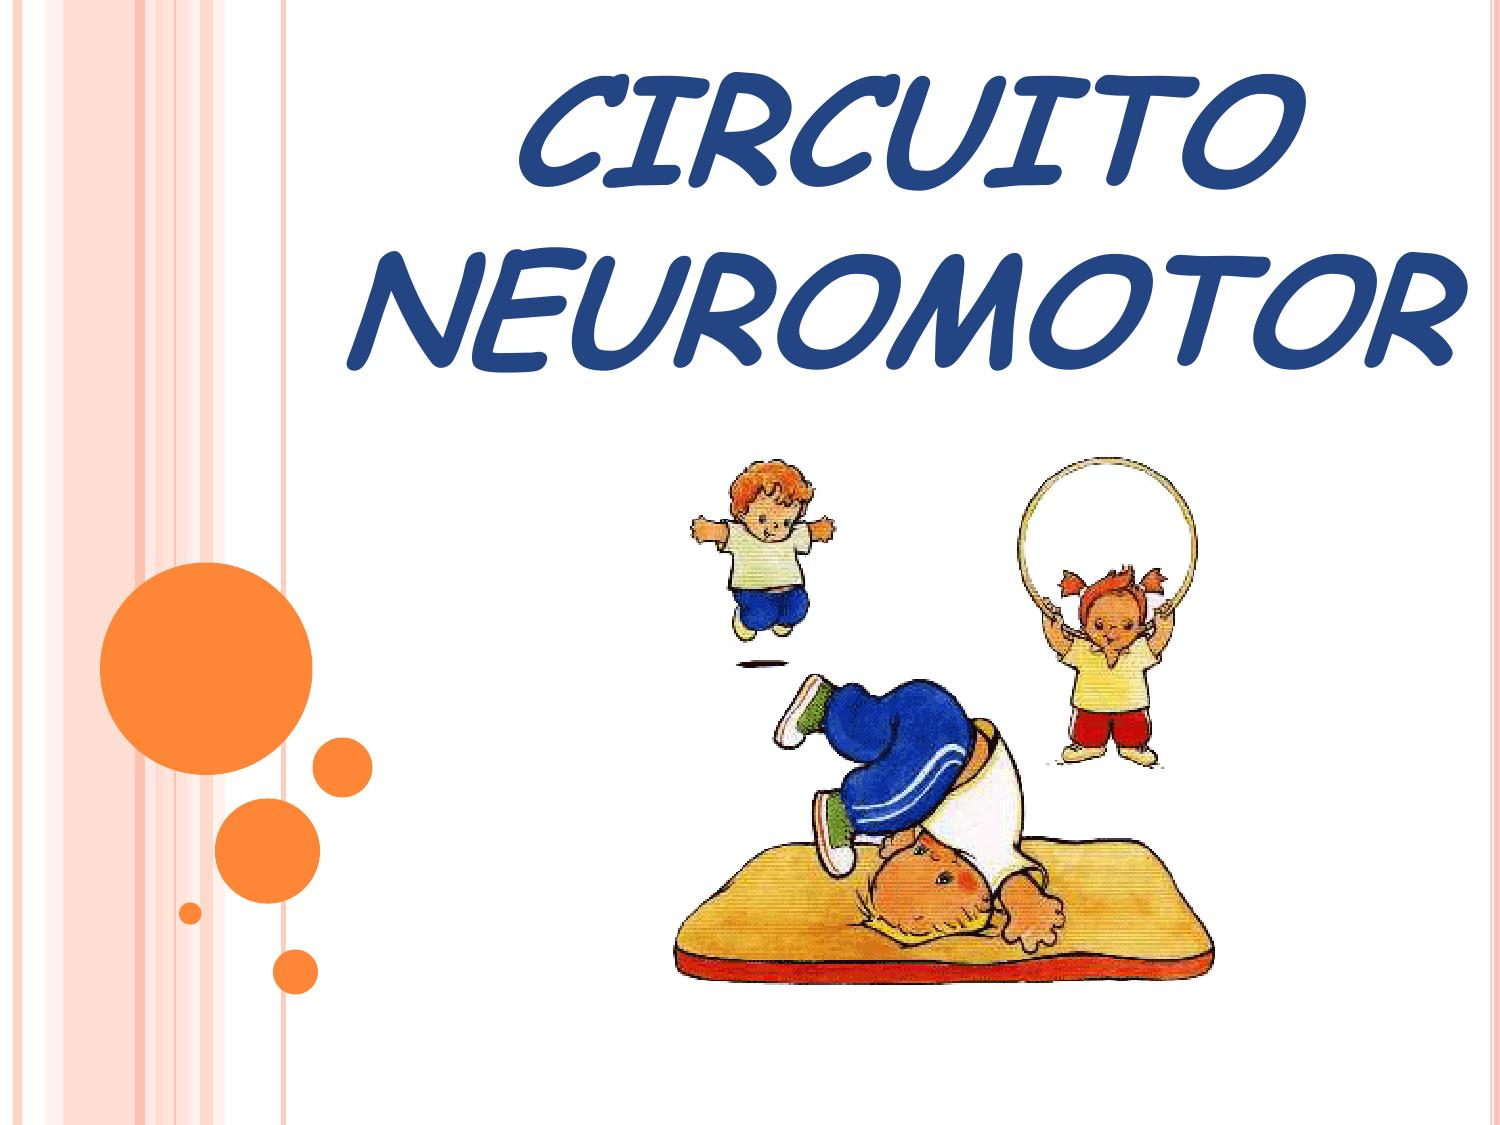 Circuito Neuromotor : Circuito neuromotor power point by gabriela rodriguez issuu